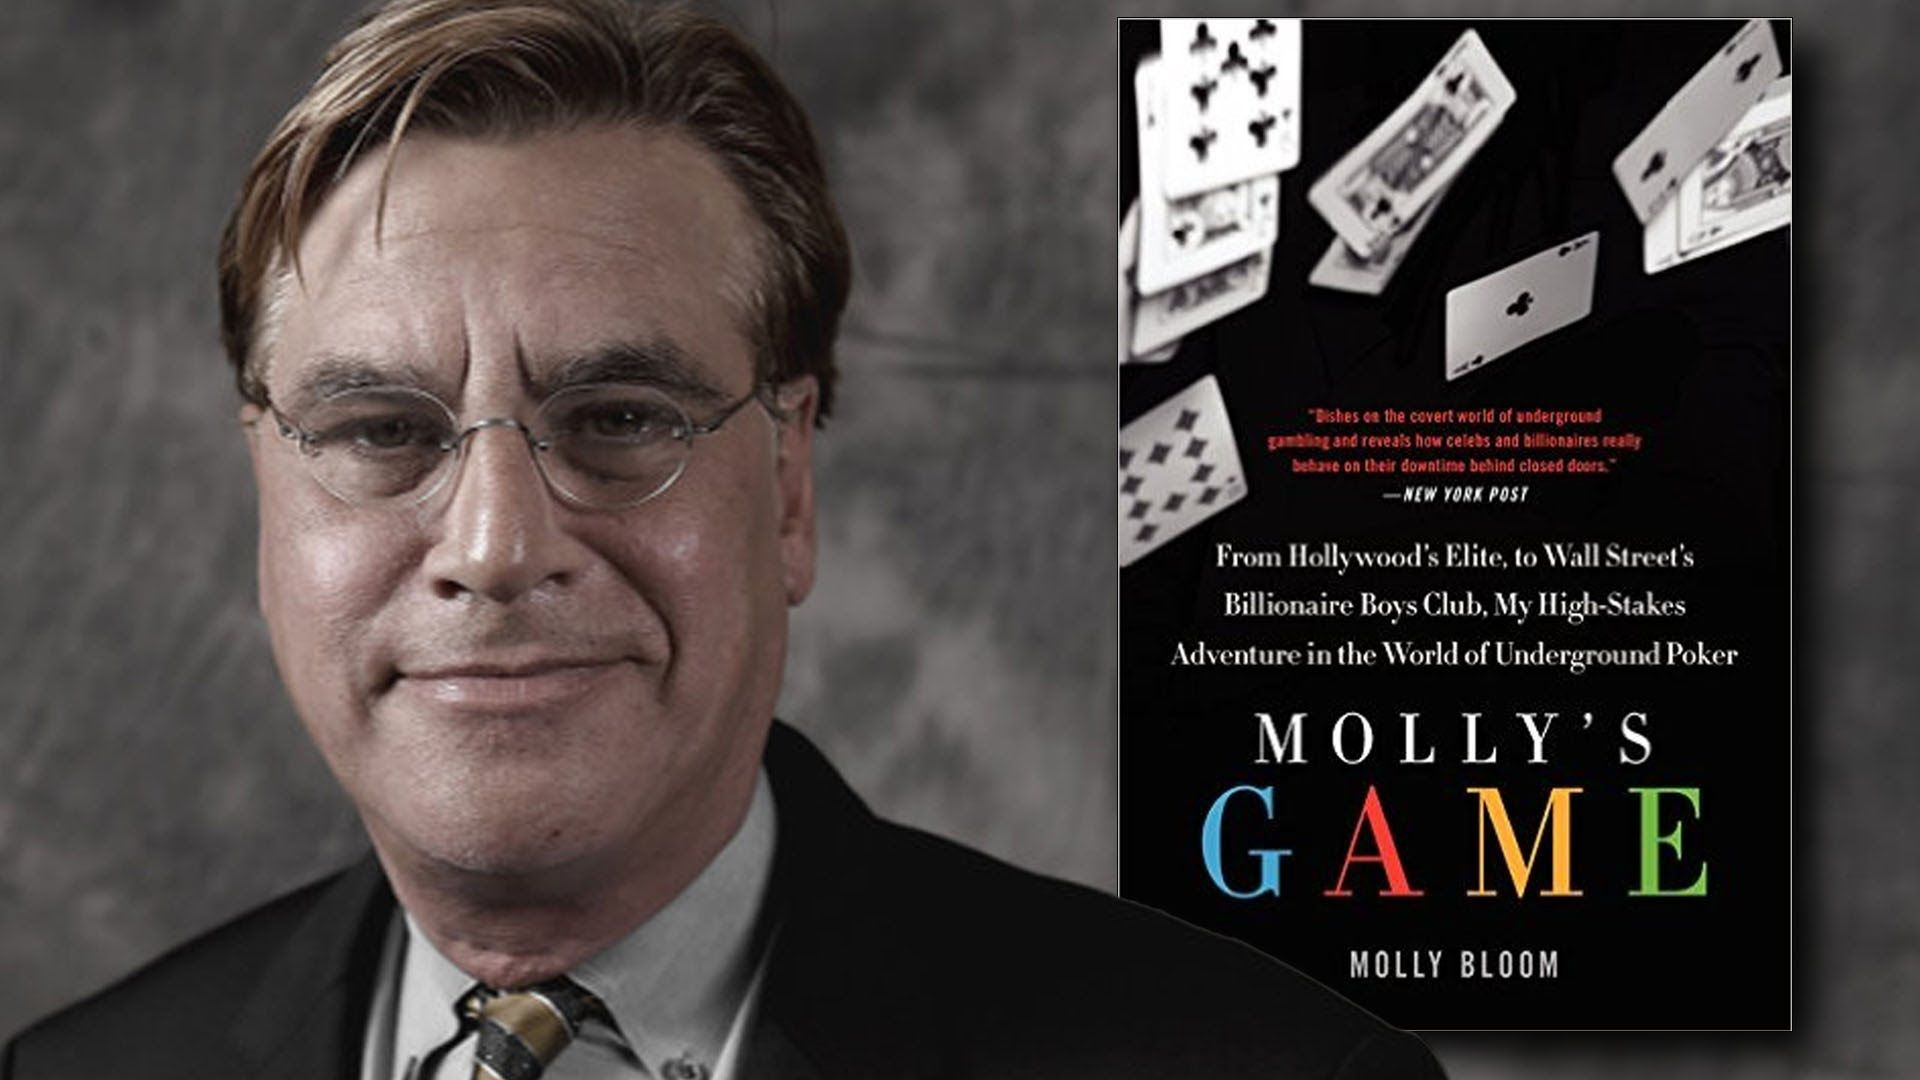 Aaron Sorkin to make directorial debut with Molly's Game ...